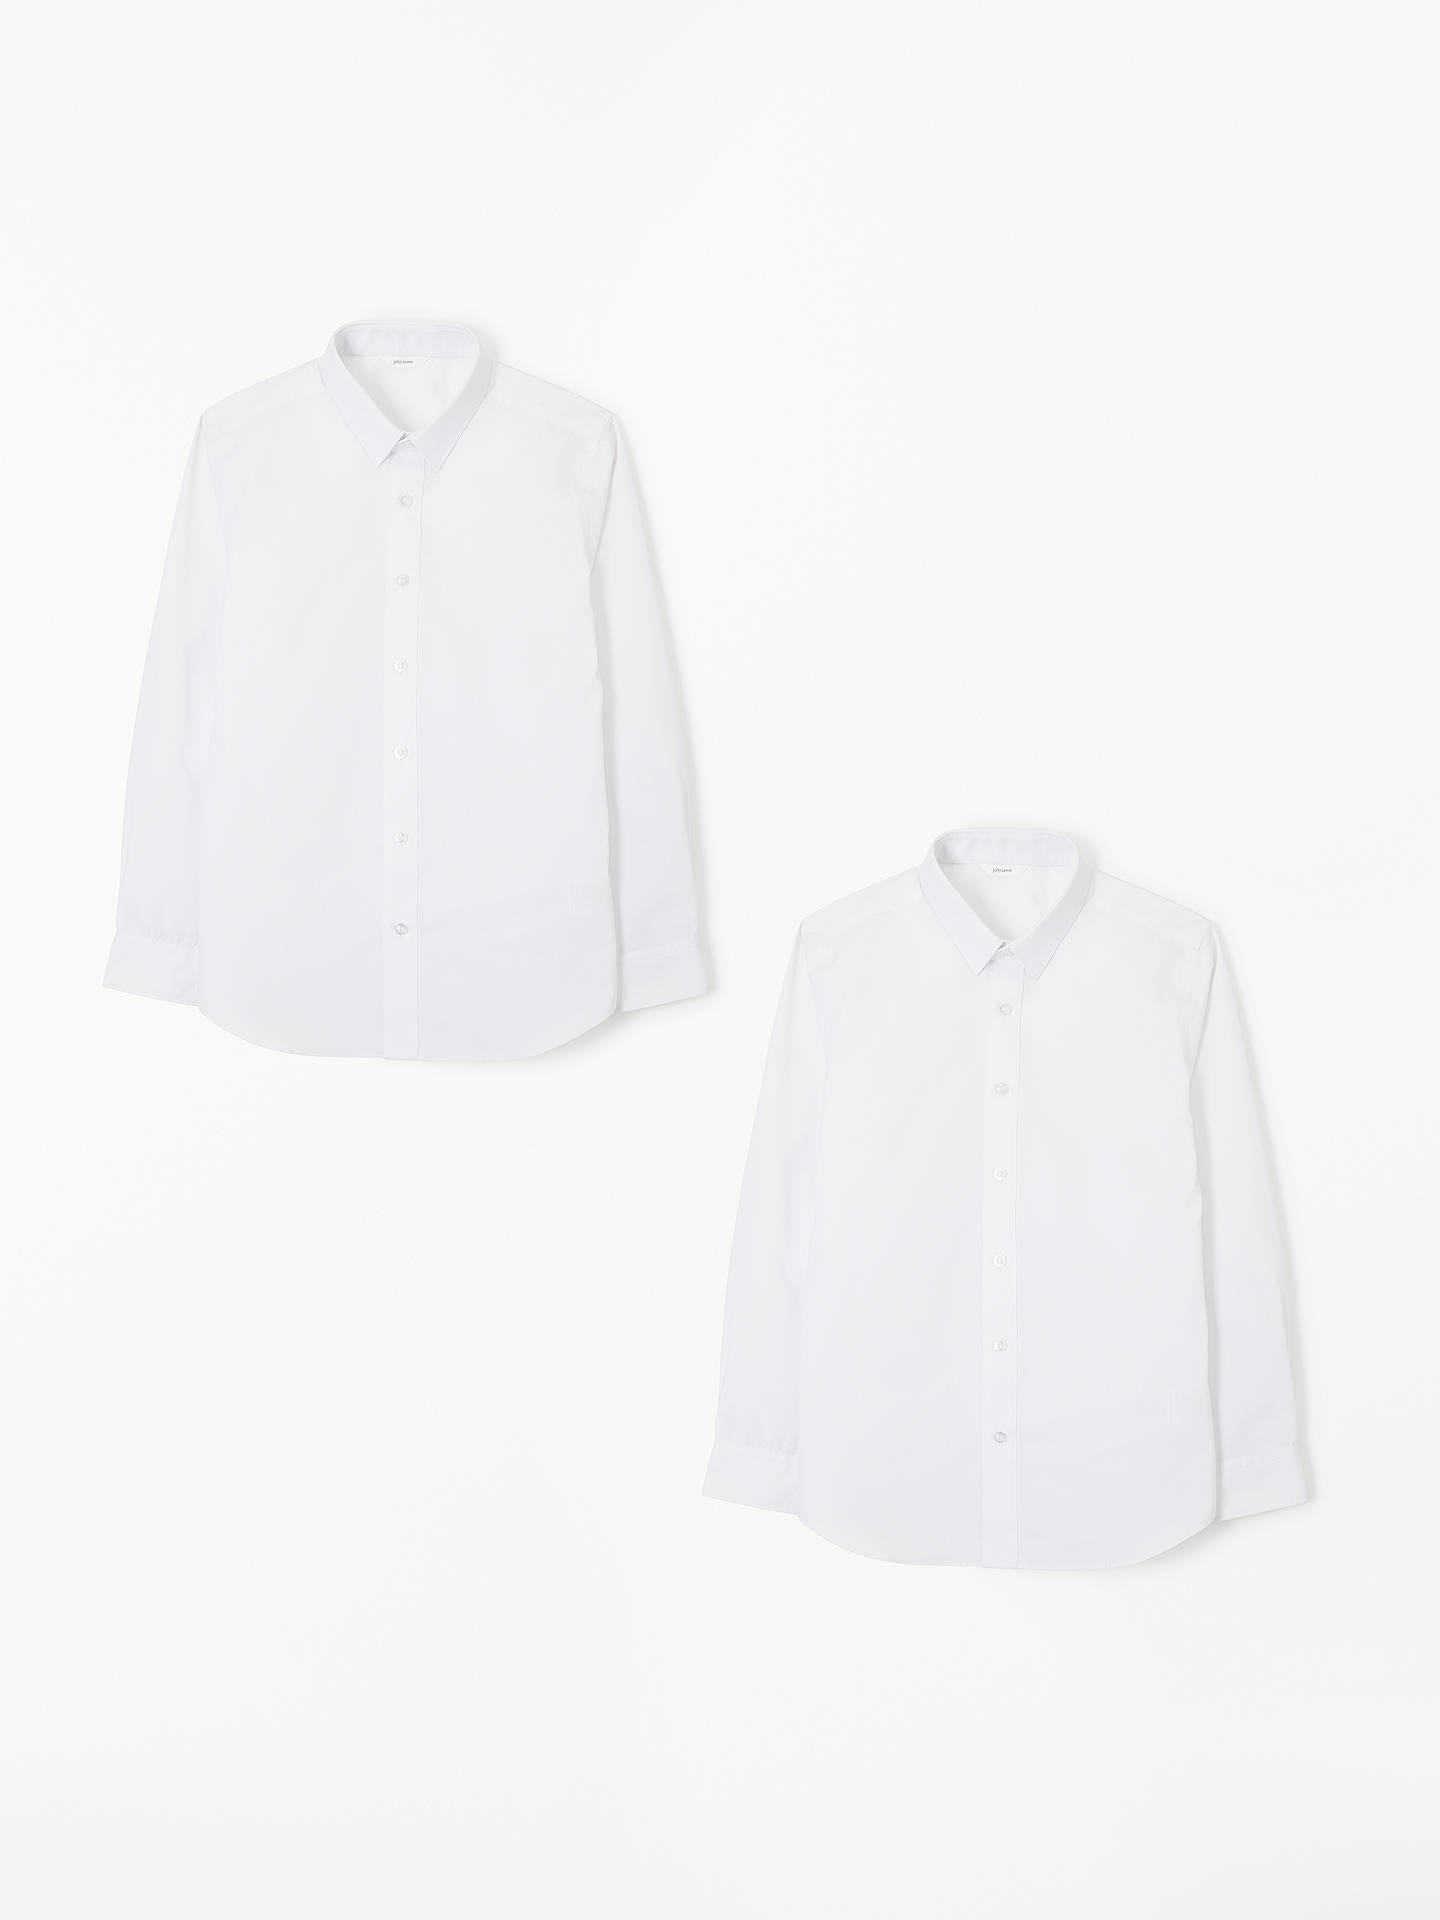 BuyJohn Lewis & Partners Easy Care Slim Fit Long Sleeve School Shirt, Pack of 2, White, 8 years Online at johnlewis.com